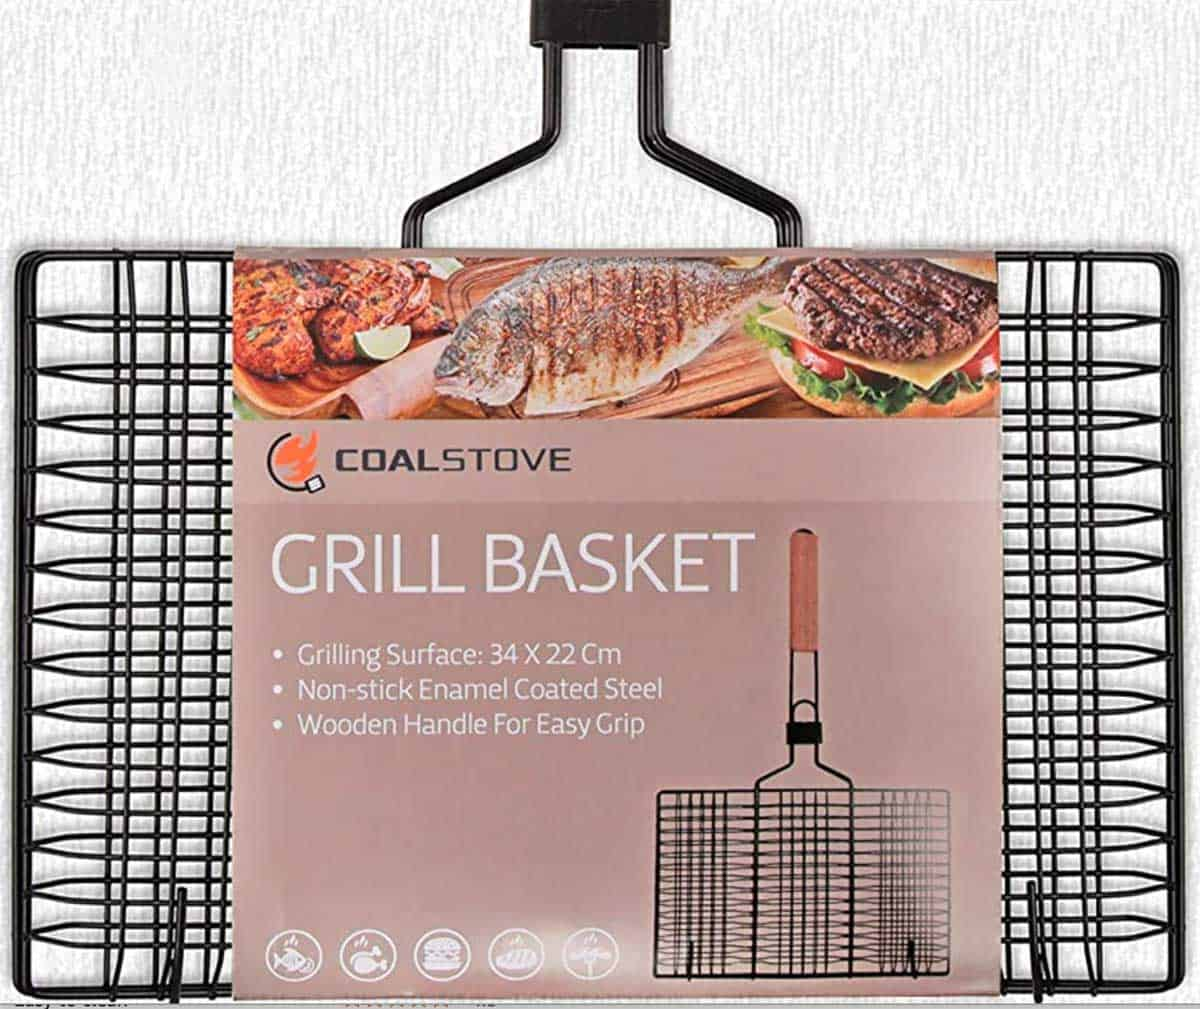 A 14 by 19-inch black wire grilling basket with a wooden handle.